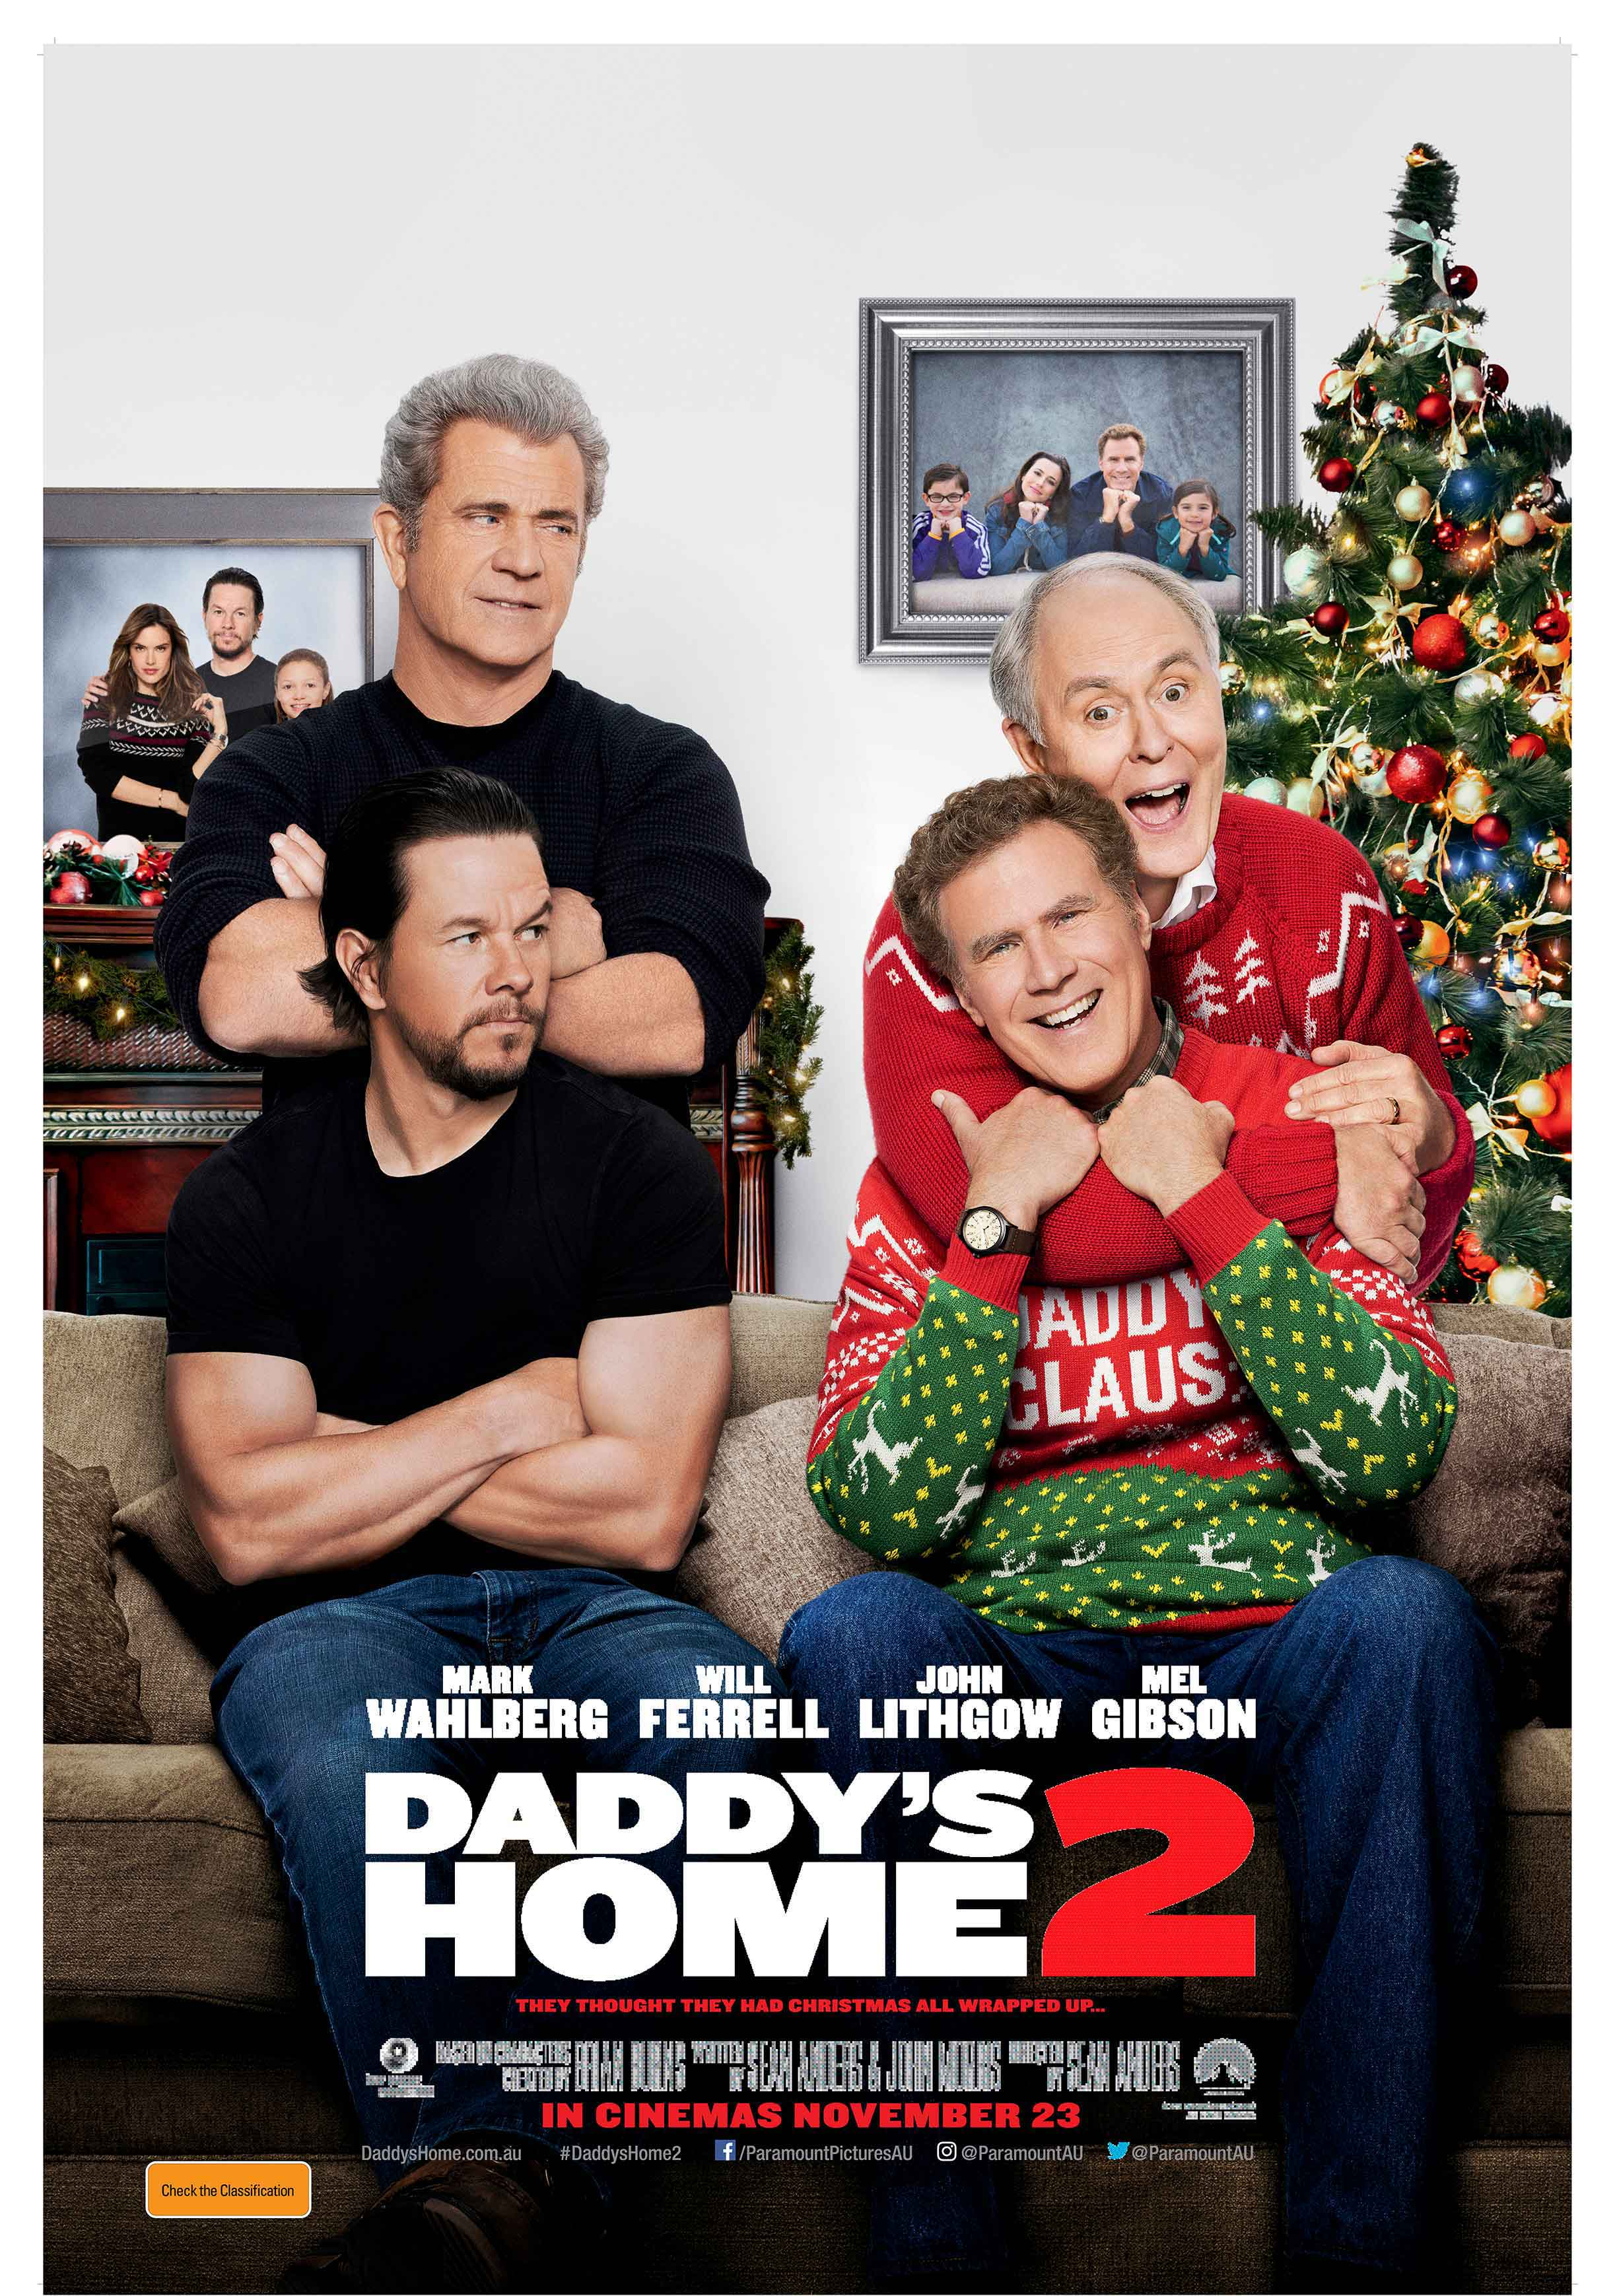 DADDYS_HOME_2_1_SHEET1